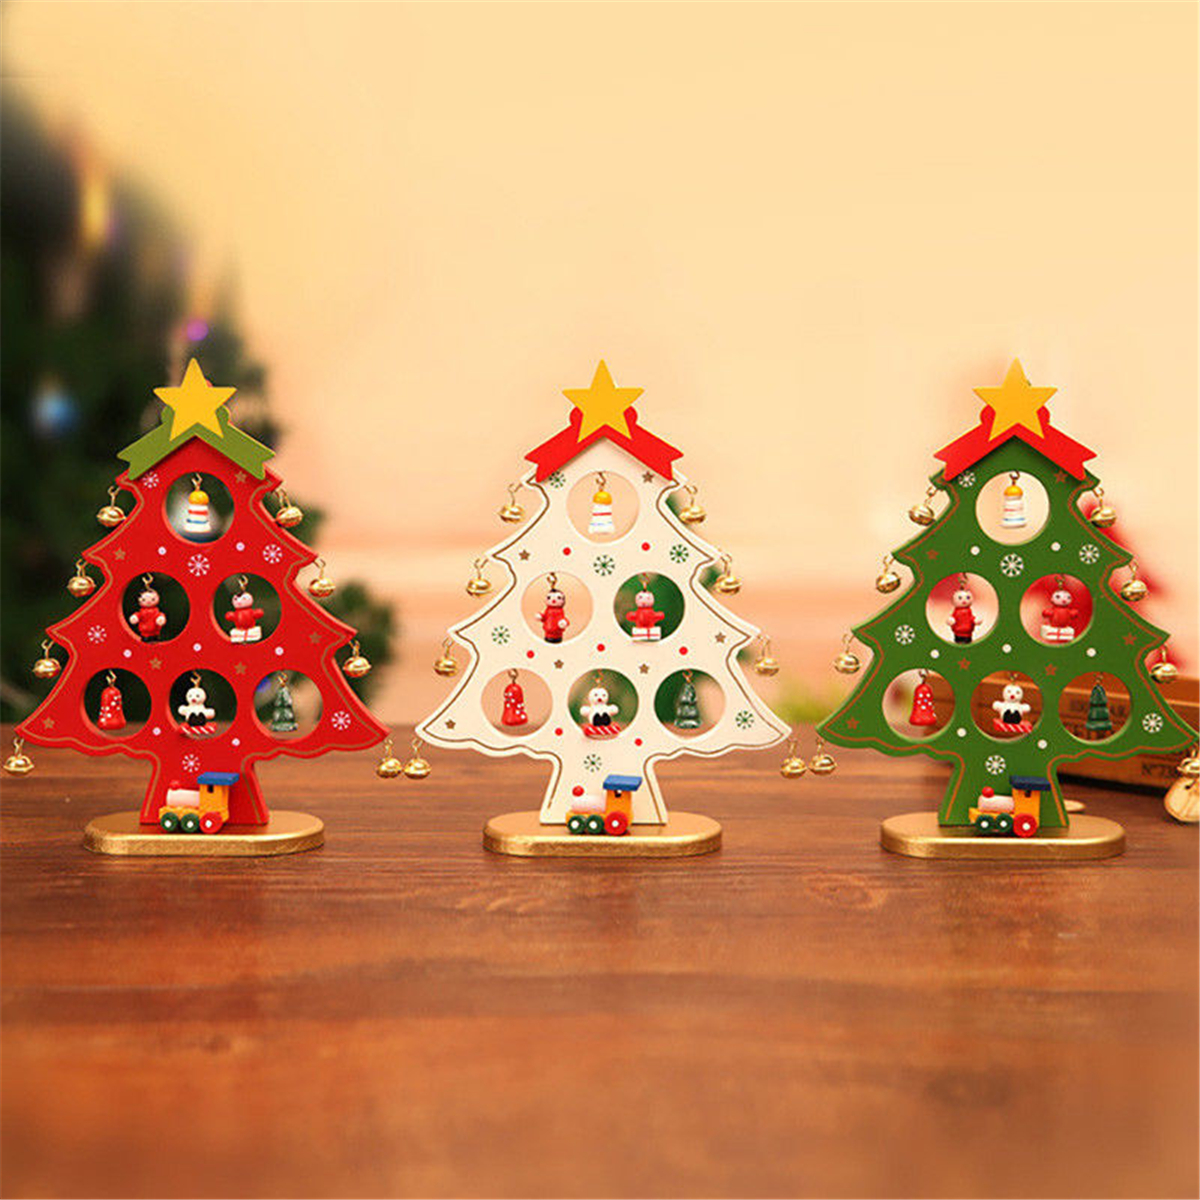 Wooden Christmas Ornaments Festival Party Tree DIY Home Table Decorations COD